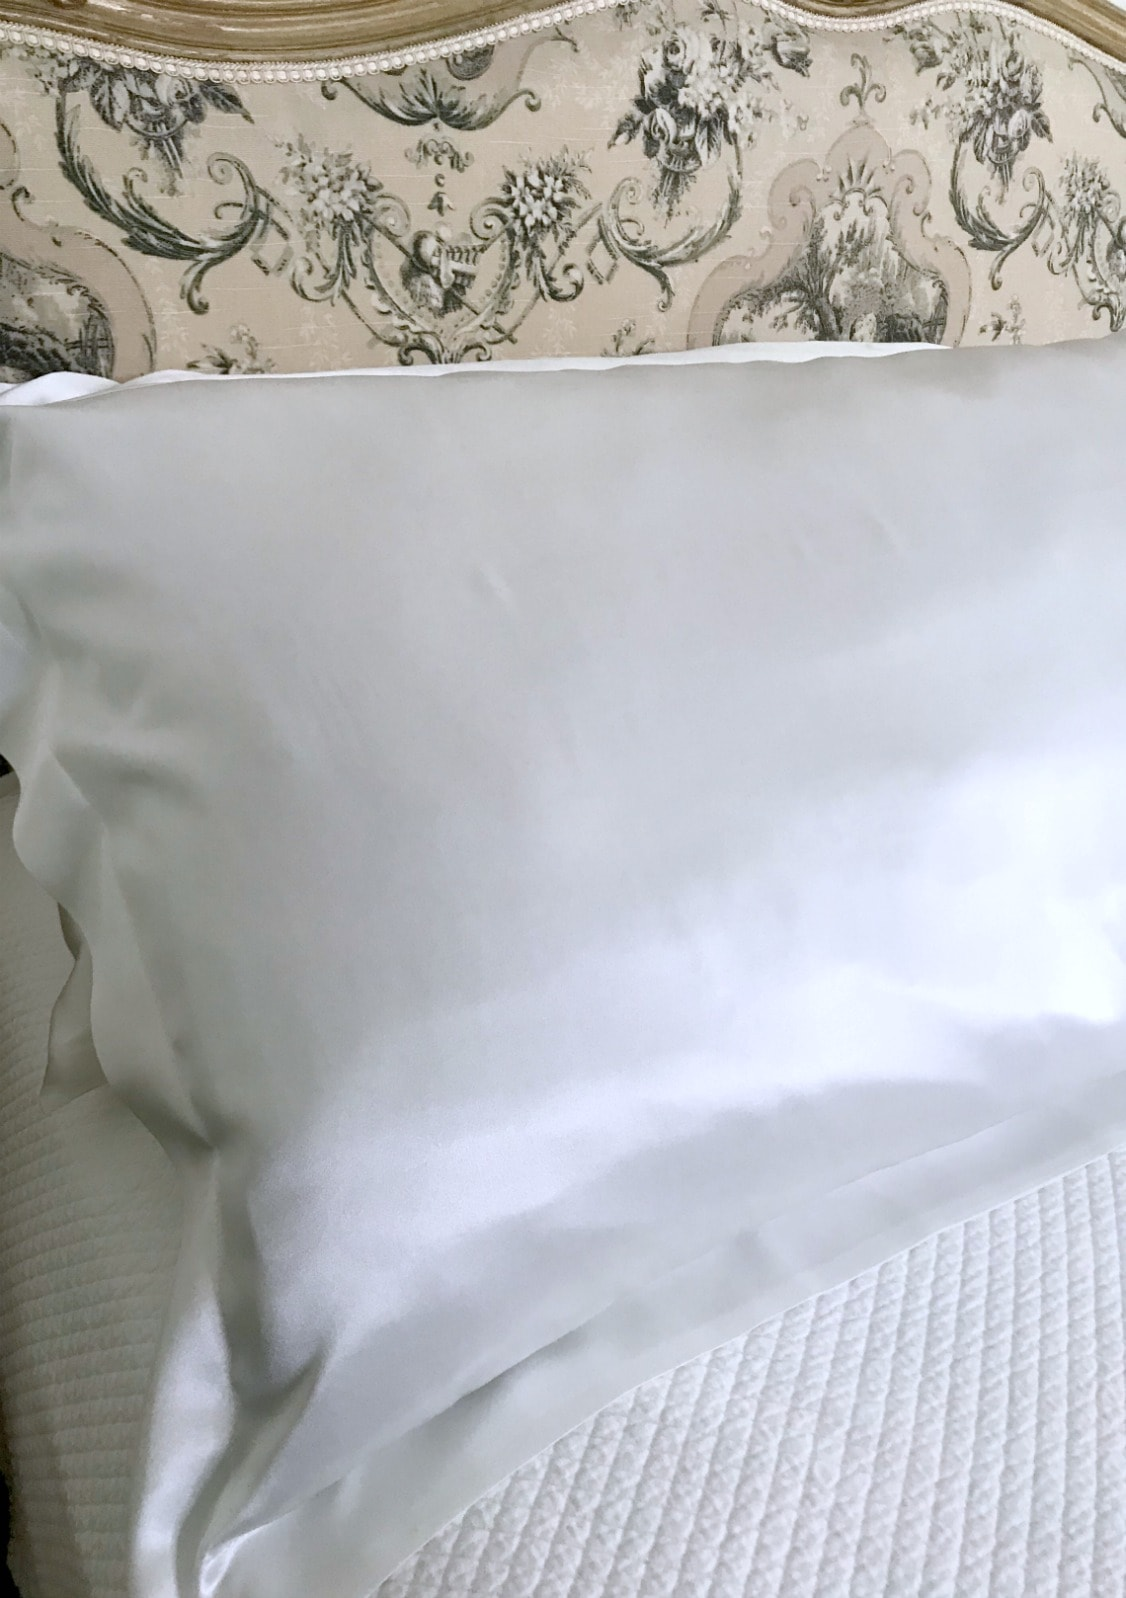 silk pillow cases from LilySilk on A Well Styled Life